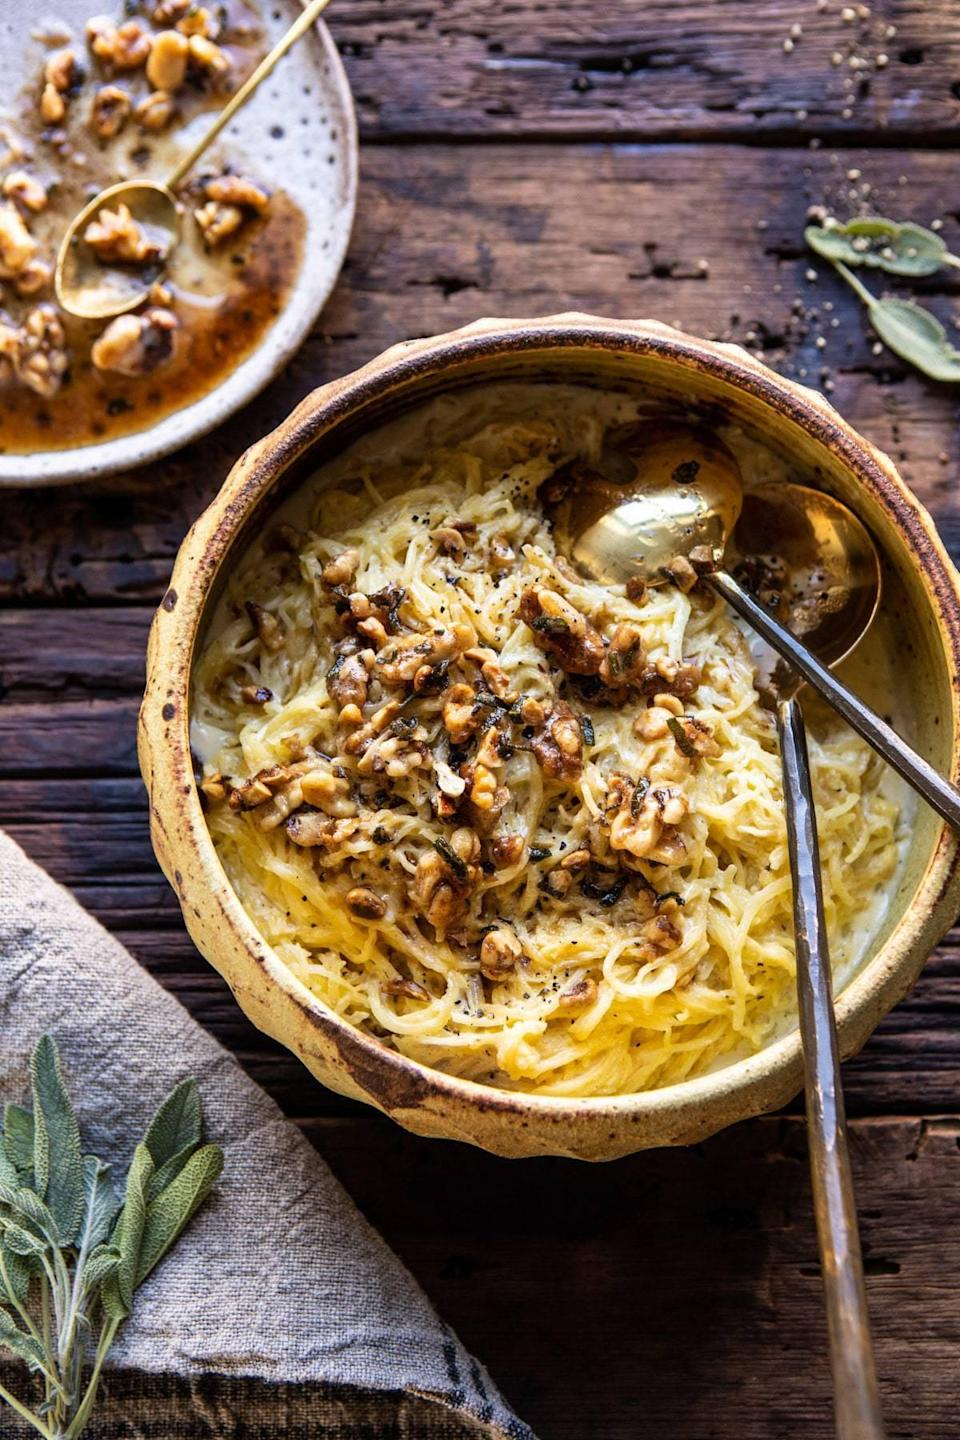 """<p>This spaghetti squash recipe is unlike any other, and that's due to the creamy goat cheese-based cream sauce that it's made with. With the rich flavors of pesto and a dash of garlic, this hearty spaghetti squash will fill you up. Feel free to add mushrooms, basil, or even a hint of rosemary if you want to shake things up. Cut this recipe in half, and you'll have enough for two, plus some leftovers.</p> <p><strong>Get the recipe:</strong> <a href=""""https://www.halfbakedharvest.com/creamed-spaghetti-squash/"""" class=""""link rapid-noclick-resp"""" rel=""""nofollow noopener"""" target=""""_blank"""" data-ylk=""""slk:creamed spaghetti squash with browned butter walnuts"""">creamed spaghetti squash with browned butter walnuts</a></p>"""